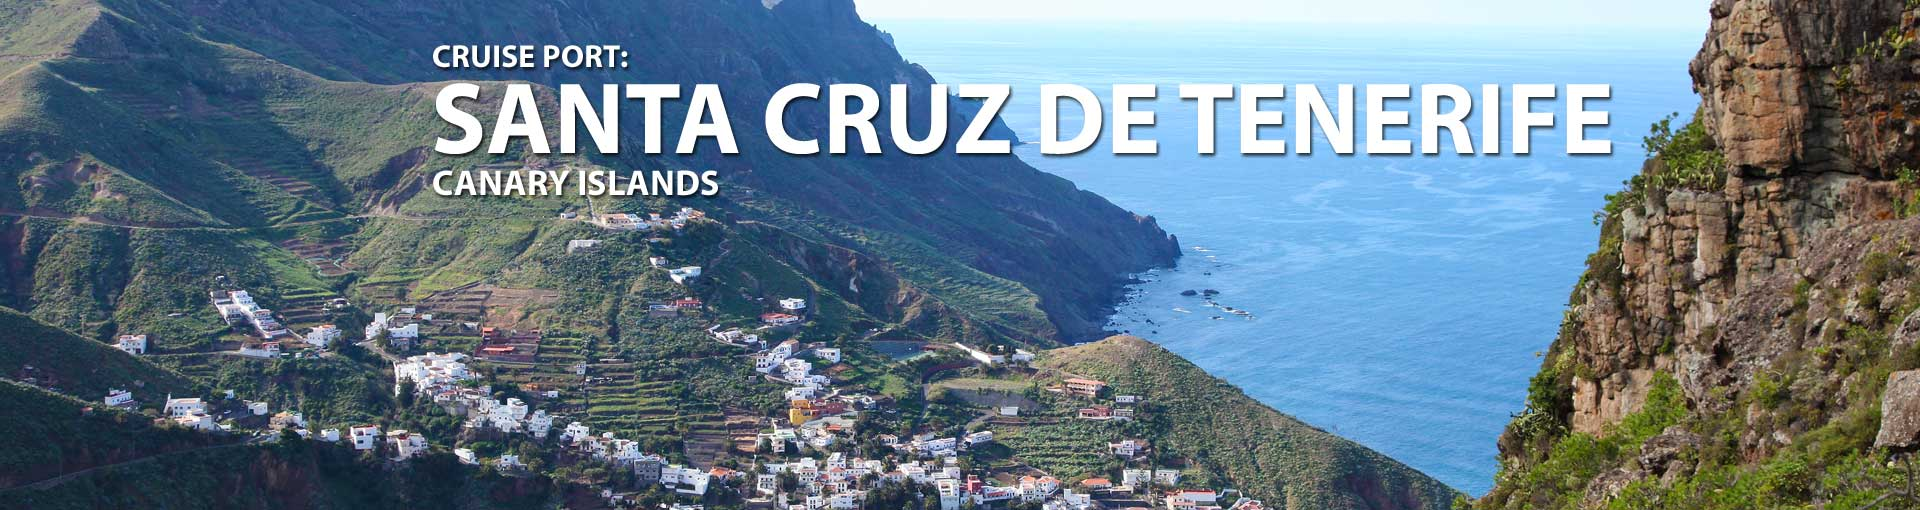 Cruises to Santa Cruz De Tenerife, Canary Islands